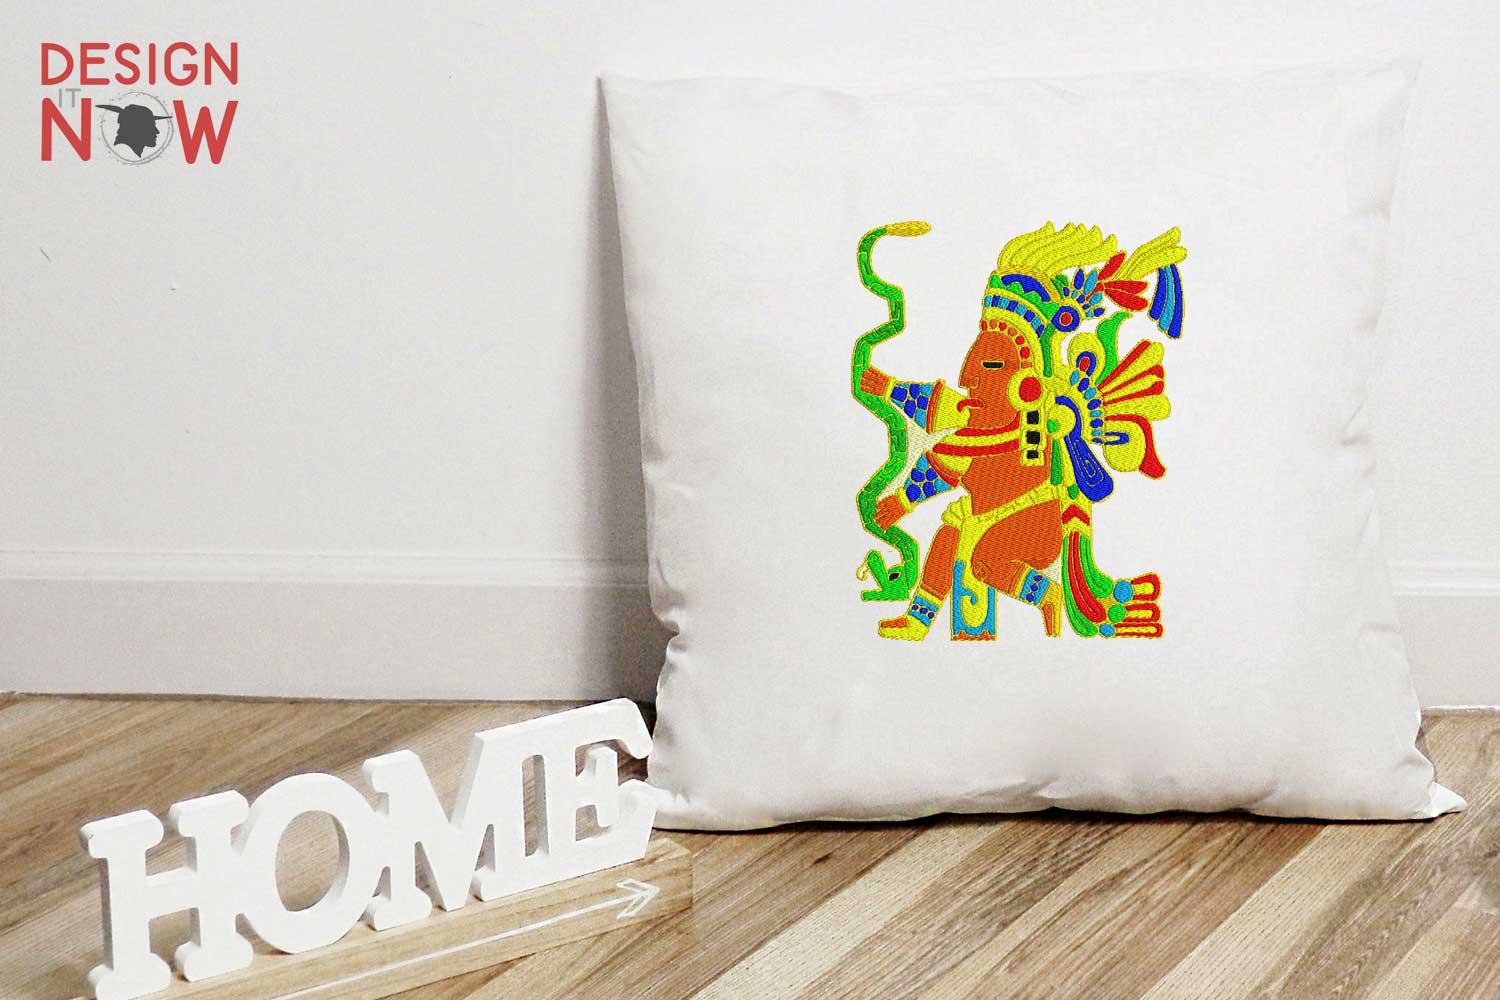 Inca Culture Embroidery Design, Inca Mythology Embroidery example image 3